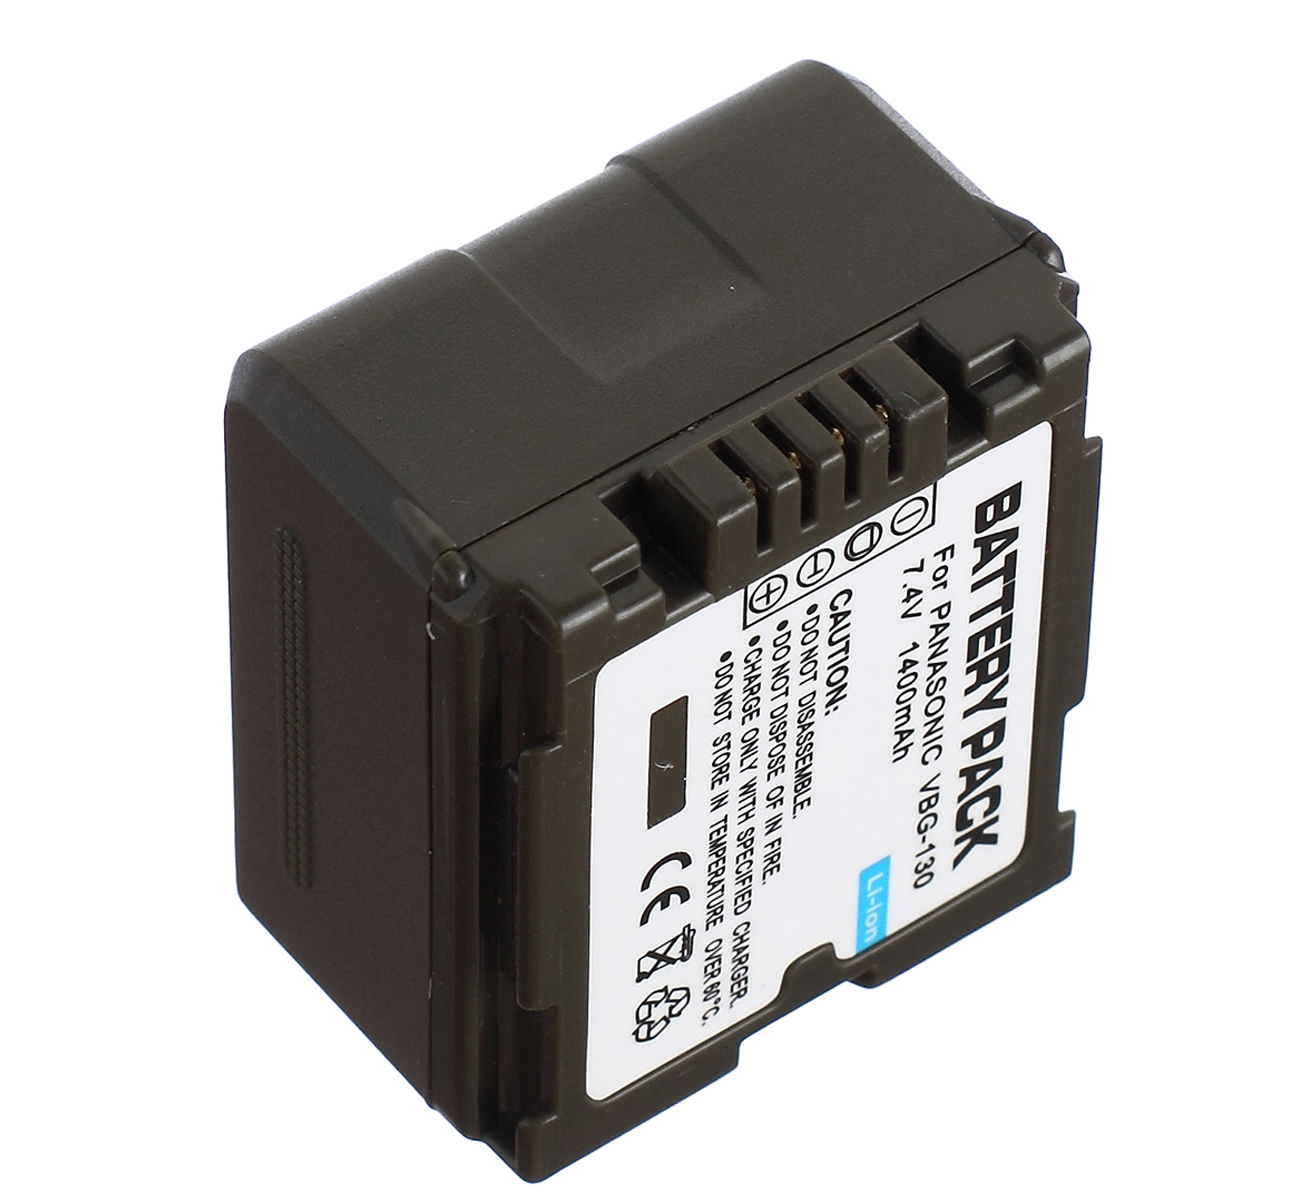 HDC-TM20P Camcorder LCD Quick Battery Charger for Panasonic HDC-TM10K HDC-TM10PP HDC-TM15P HDC-TM15K